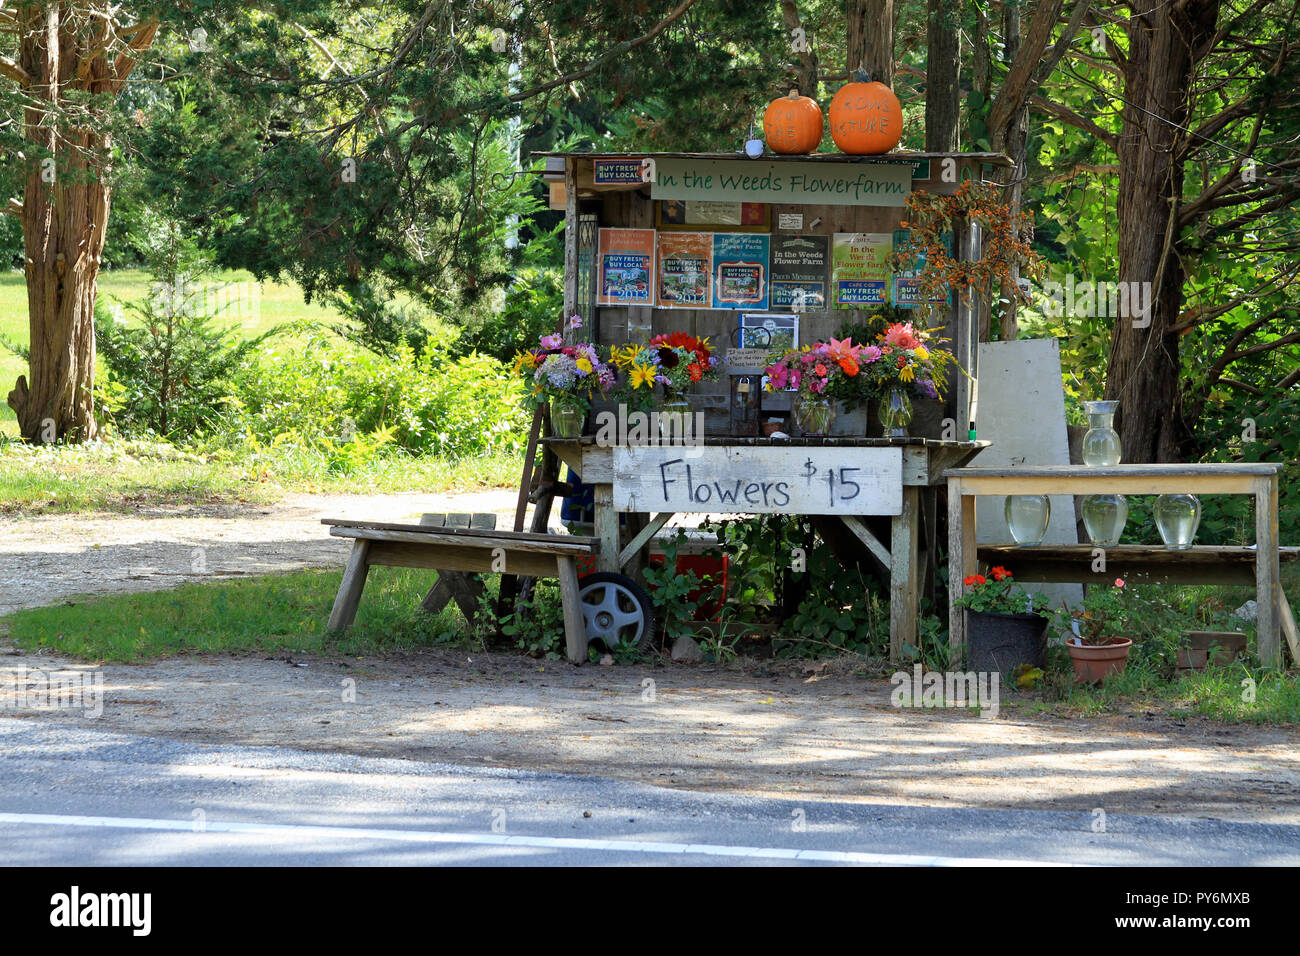 A roadside flower stand on Cape Cod in Brewster, Massachusetts Stock Photo